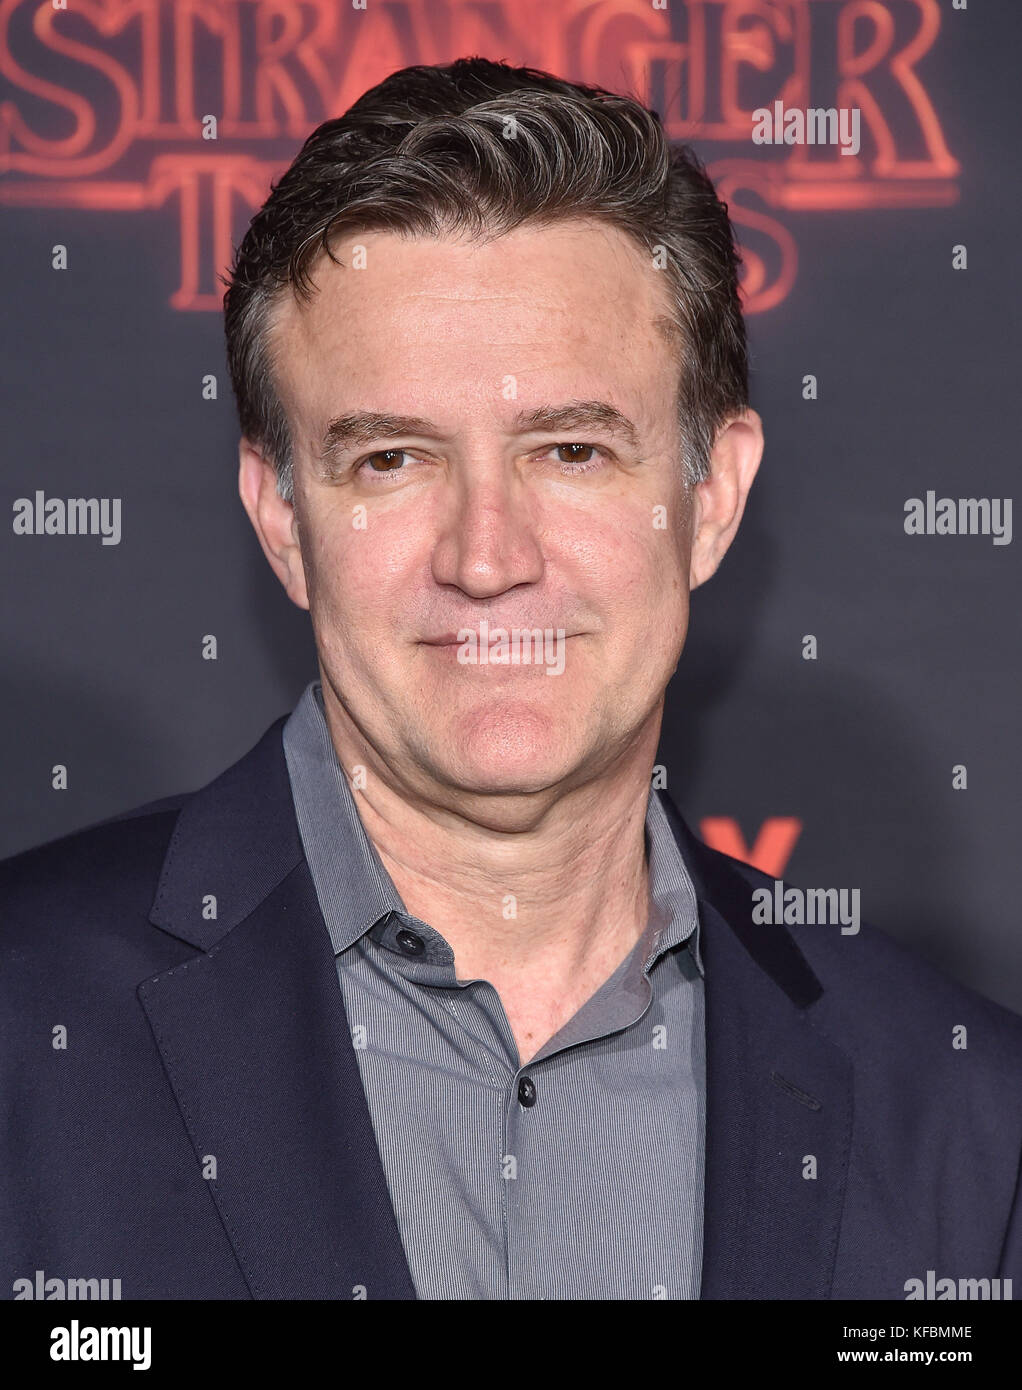 Westwood, California, USA. 26th Oct, 2017. Joe Chrest arrives for the Netflix 'Stranger Things' 2 Premiere - Stock Image